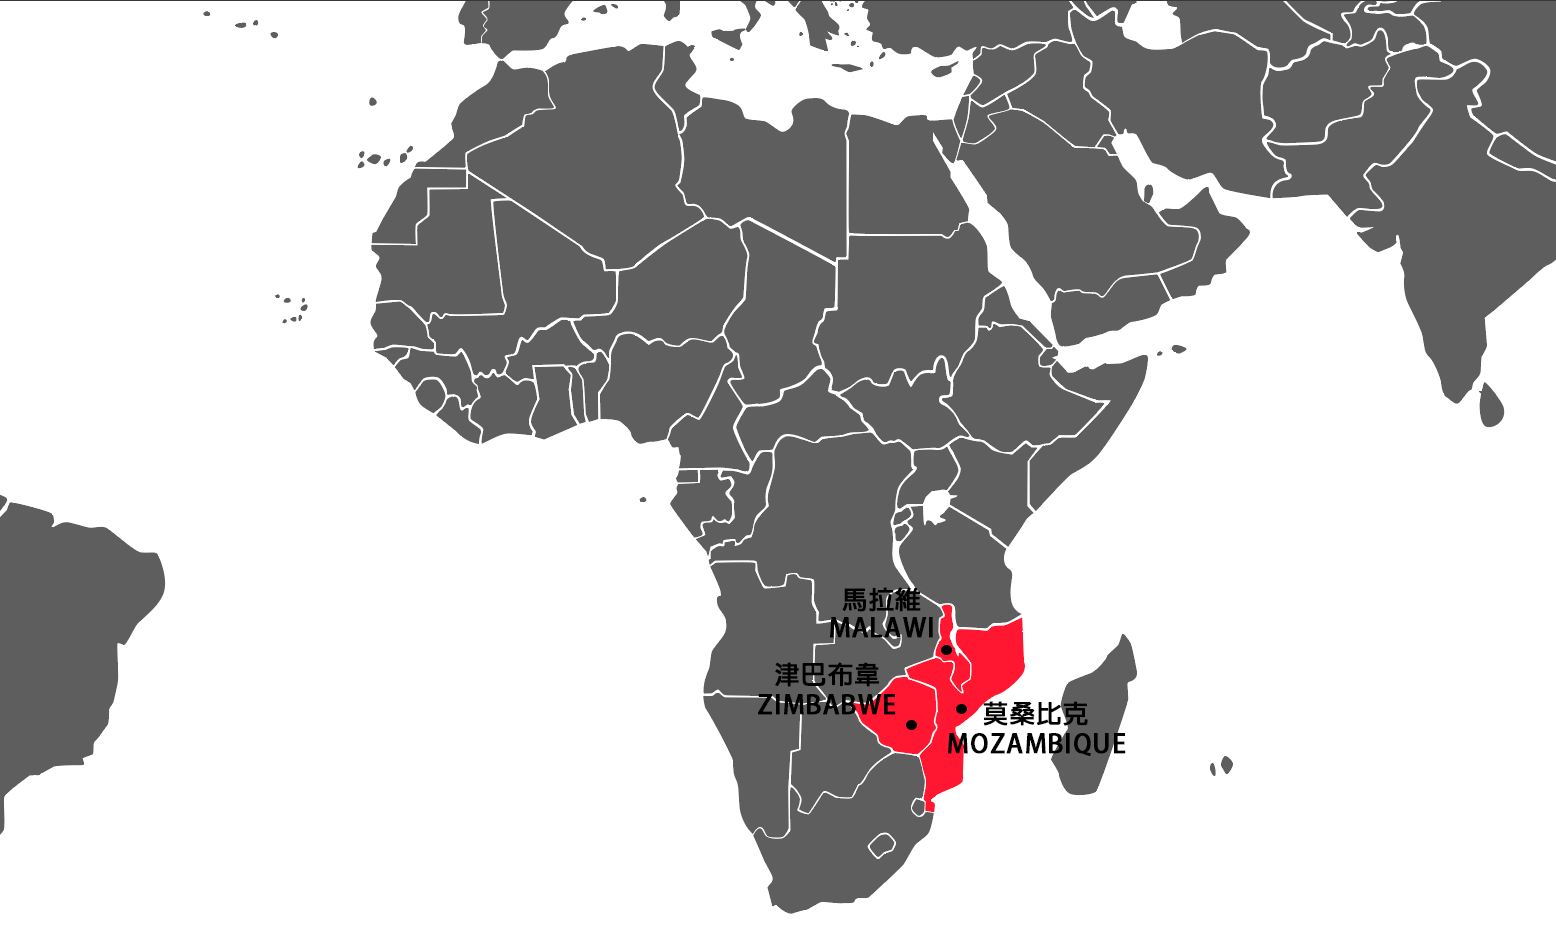 Cyclone Idai map